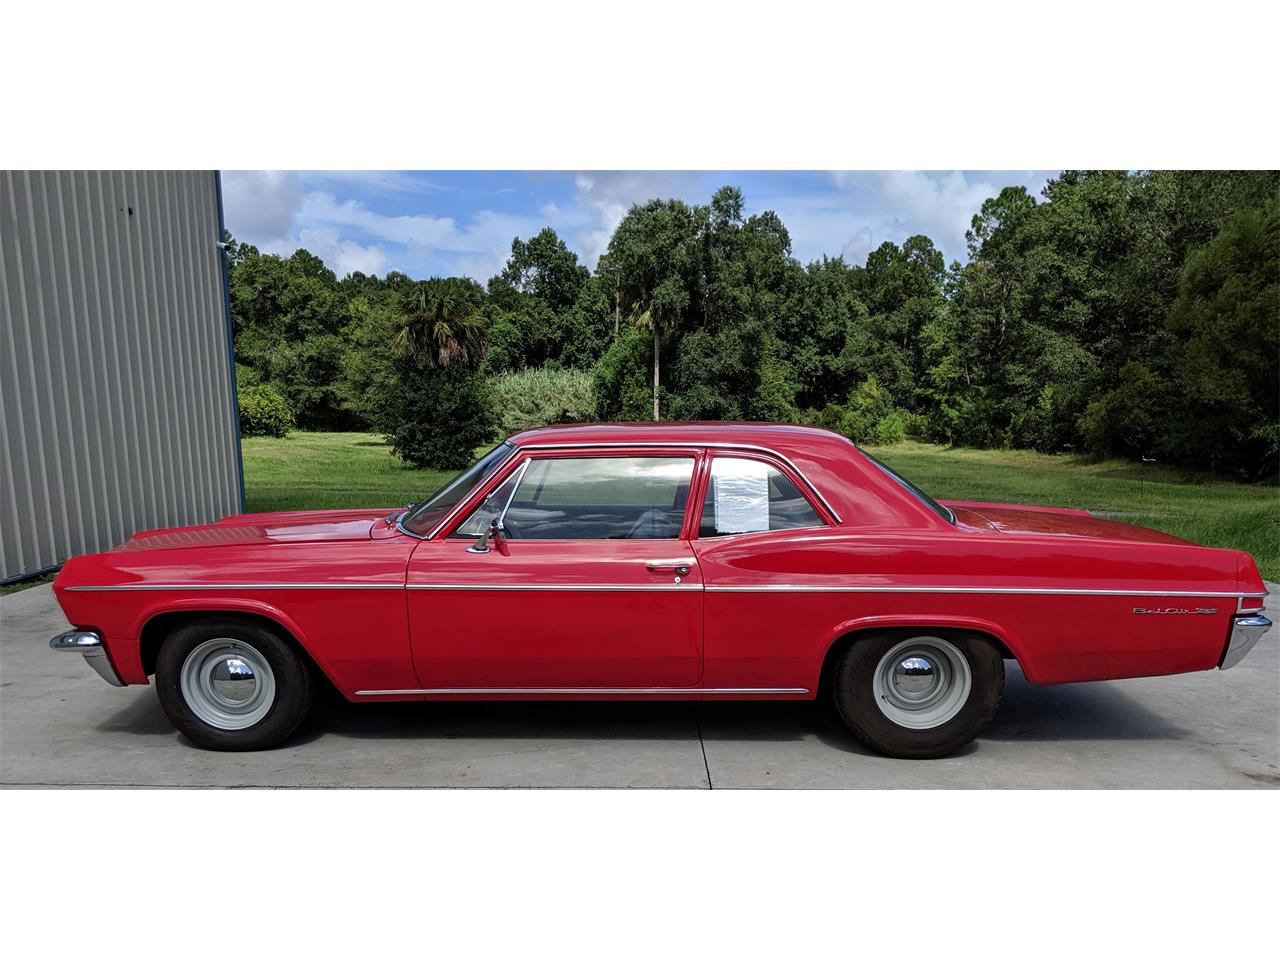 1965 Chevrolet Bel Air (CC-1267865) for sale in Brunswick, Georgia